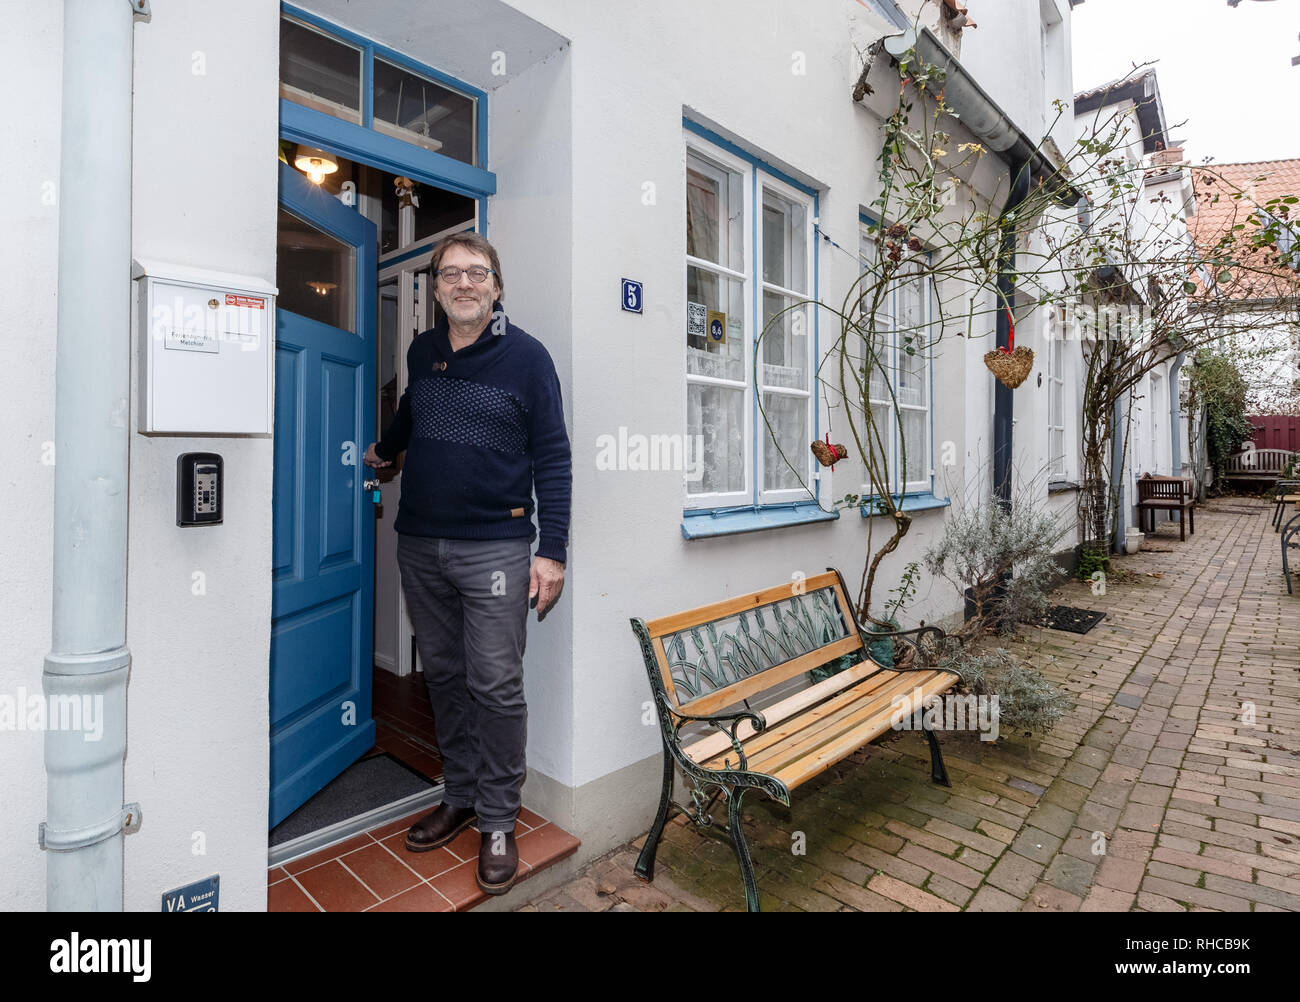 01 February 2019, Schleswig-Holstein, Lübeck: Holiday home owner Wolfgang Seitz stands in front of his apartment in a historic old building in the centre of Lübeck. Soon the picturesque gang houses in Lübeck will no longer be allowed to be rented to tourists. The homeowners want to sue against the usage ban. They threaten to sell their cottages as second homes to Scandinavians, for example. Photo: Markus Scholz/dpa - Stock Image